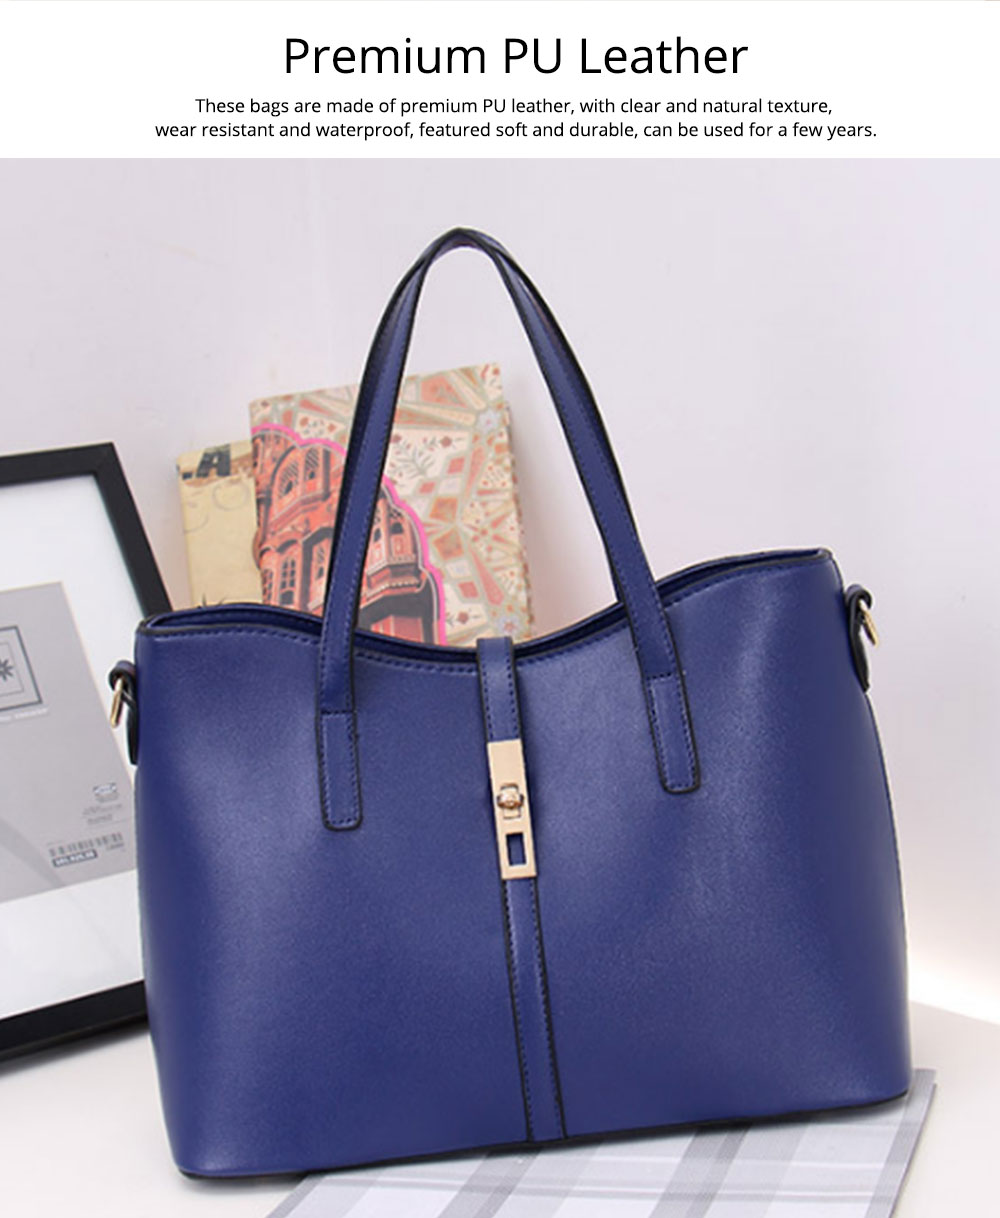 Simple Women Accessories Lady Tote Bag Sets - 3pcs Solid PU Leather Shoulder Bag & Cross Body Pouch & Strapped Clutch 2